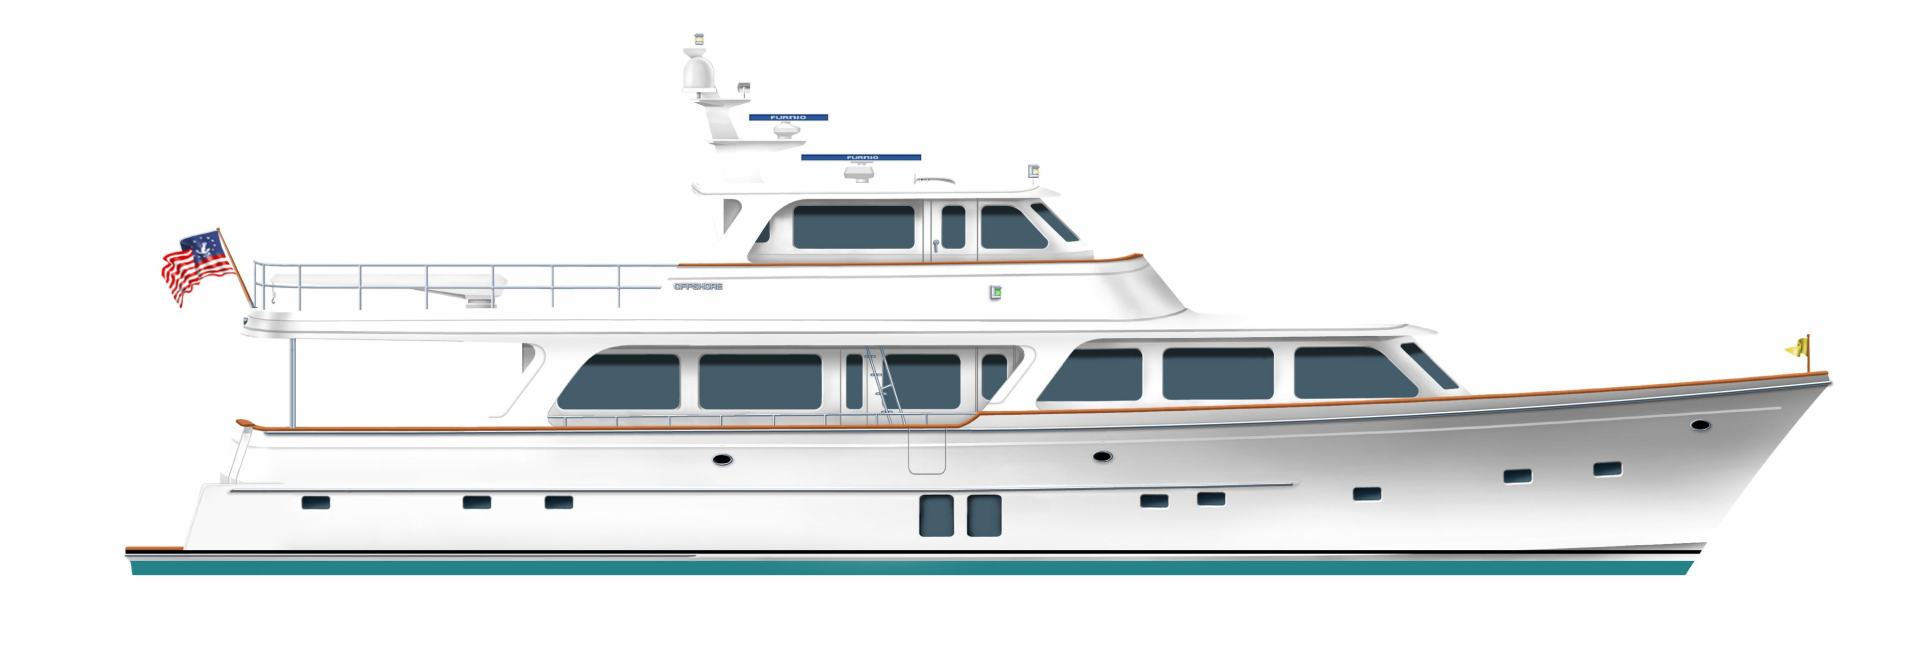 85' Offshore Yachts 2020 Motoryacht